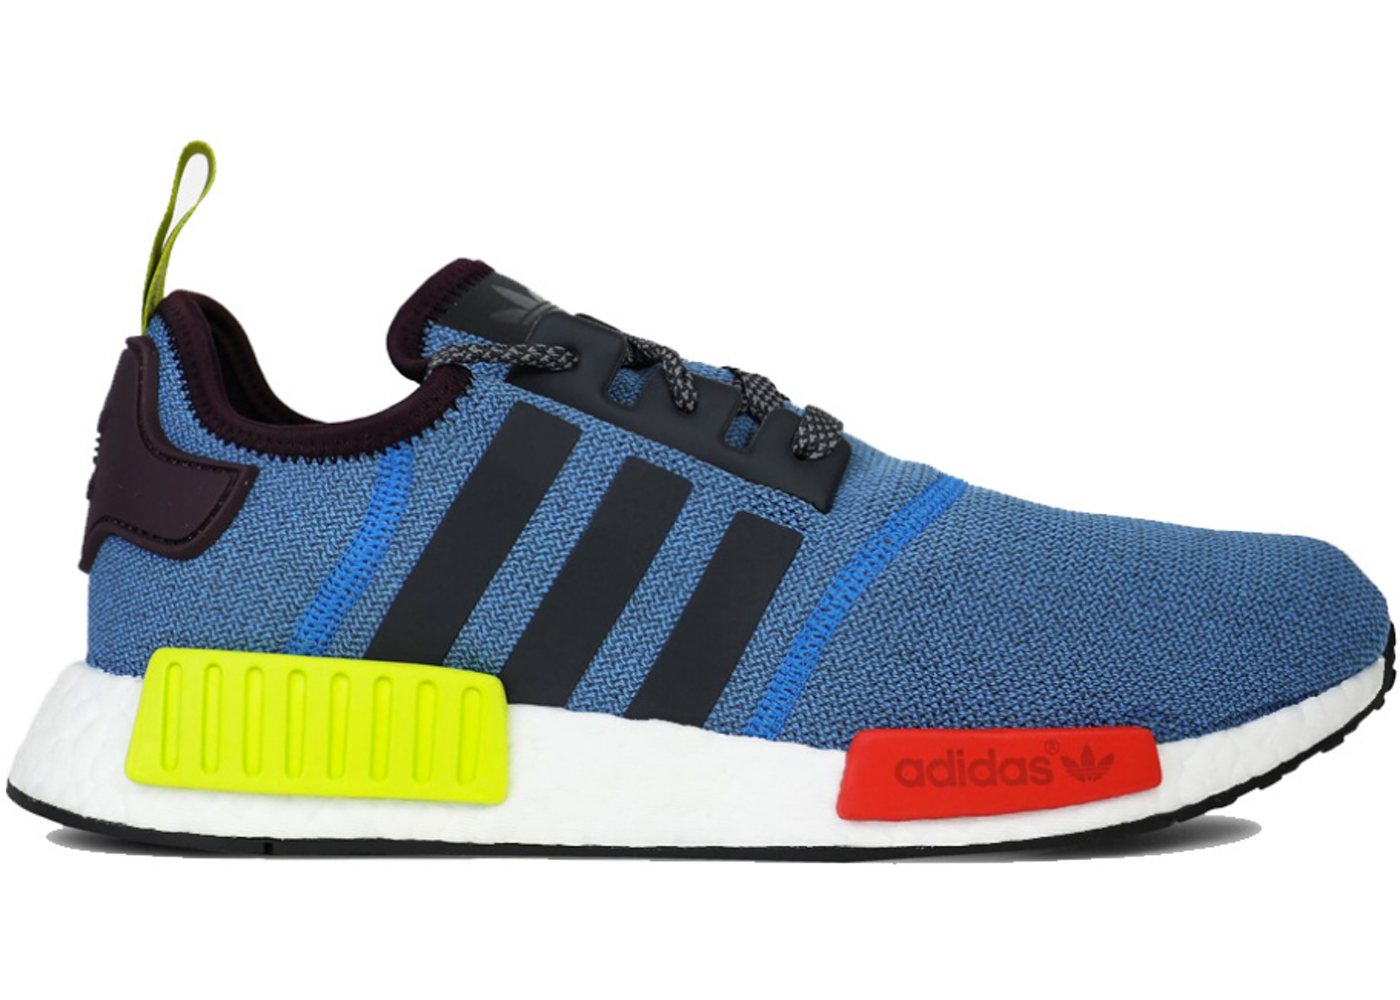 Adidas NMD R1 PK Unboxing Review / First Look